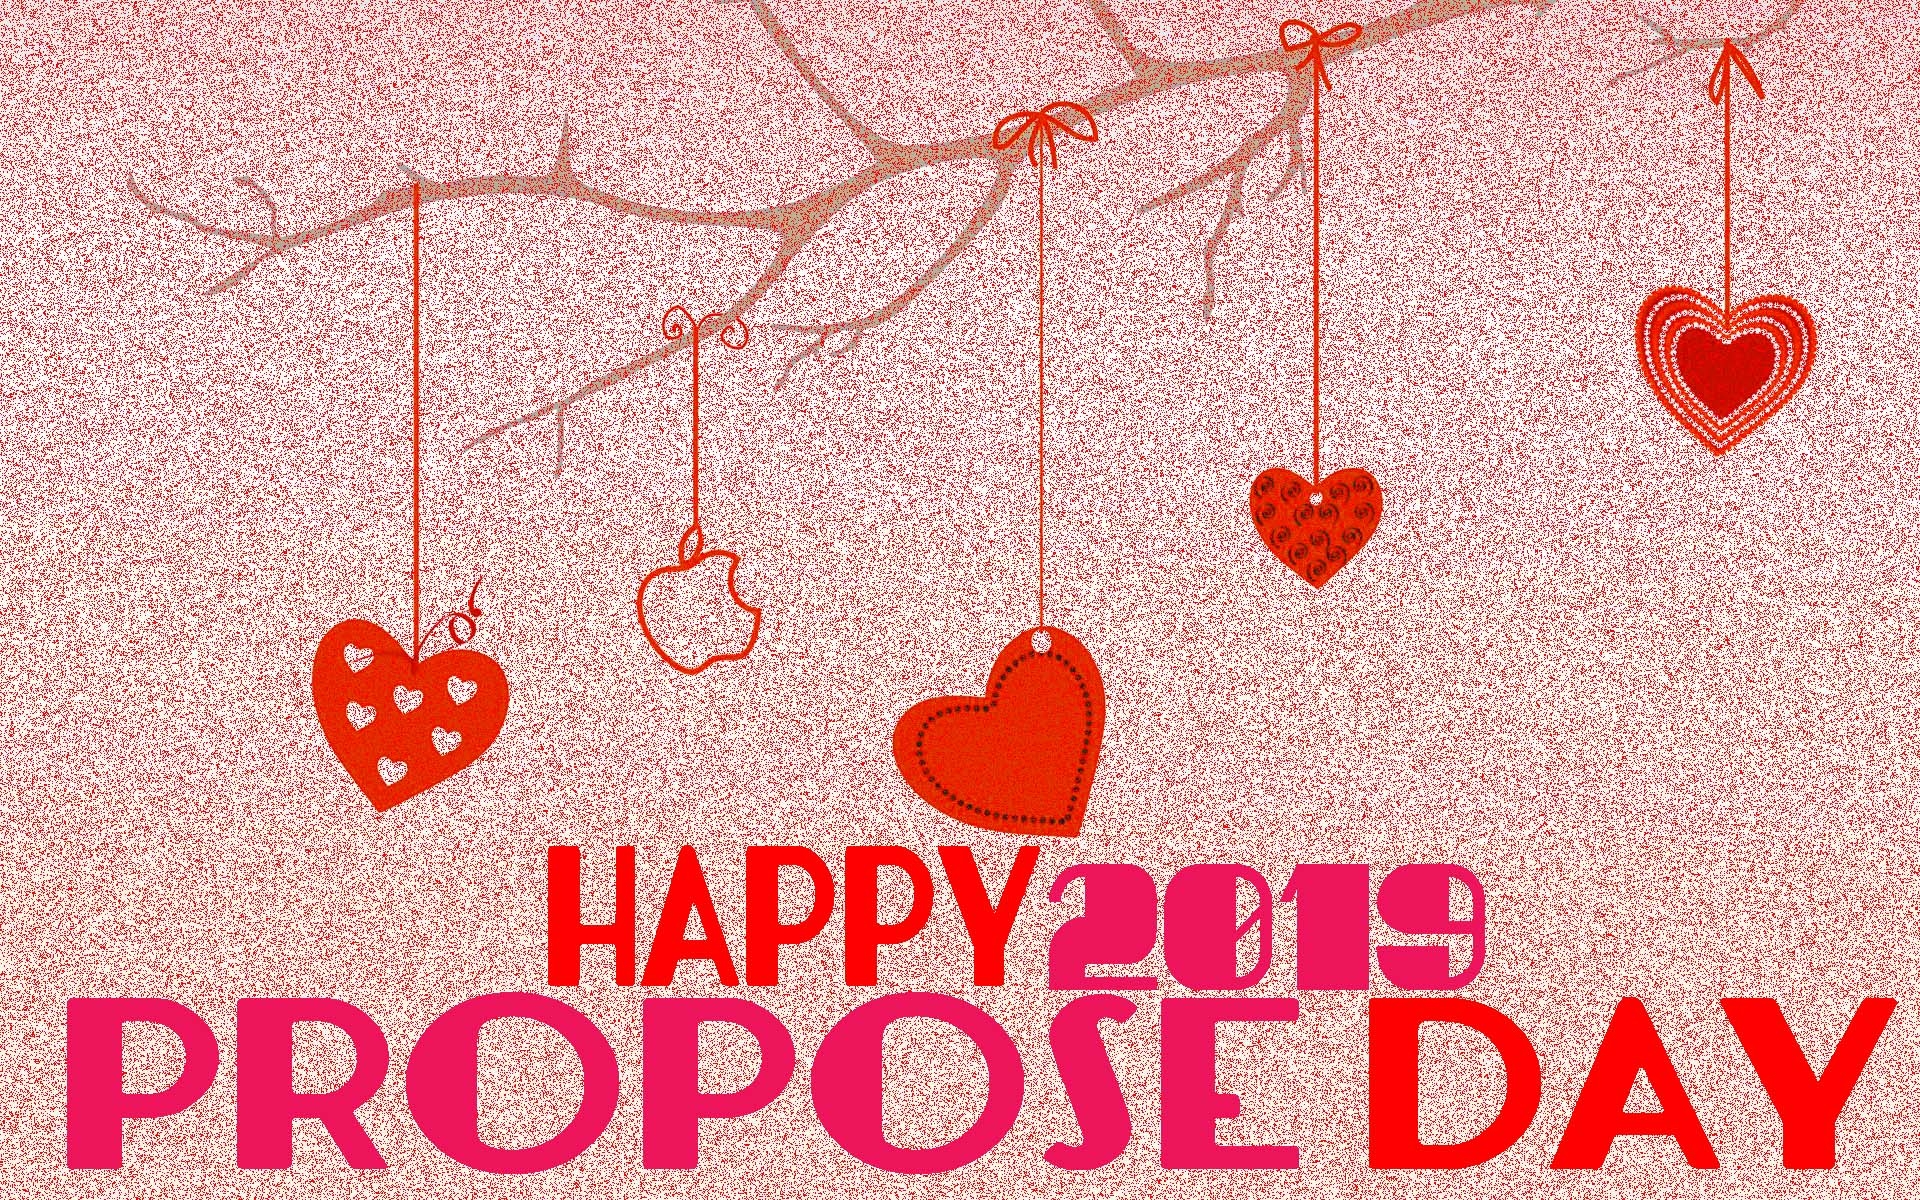 Valentine 2019 Propose Day Wishes Images For Boy Girl With Shayari